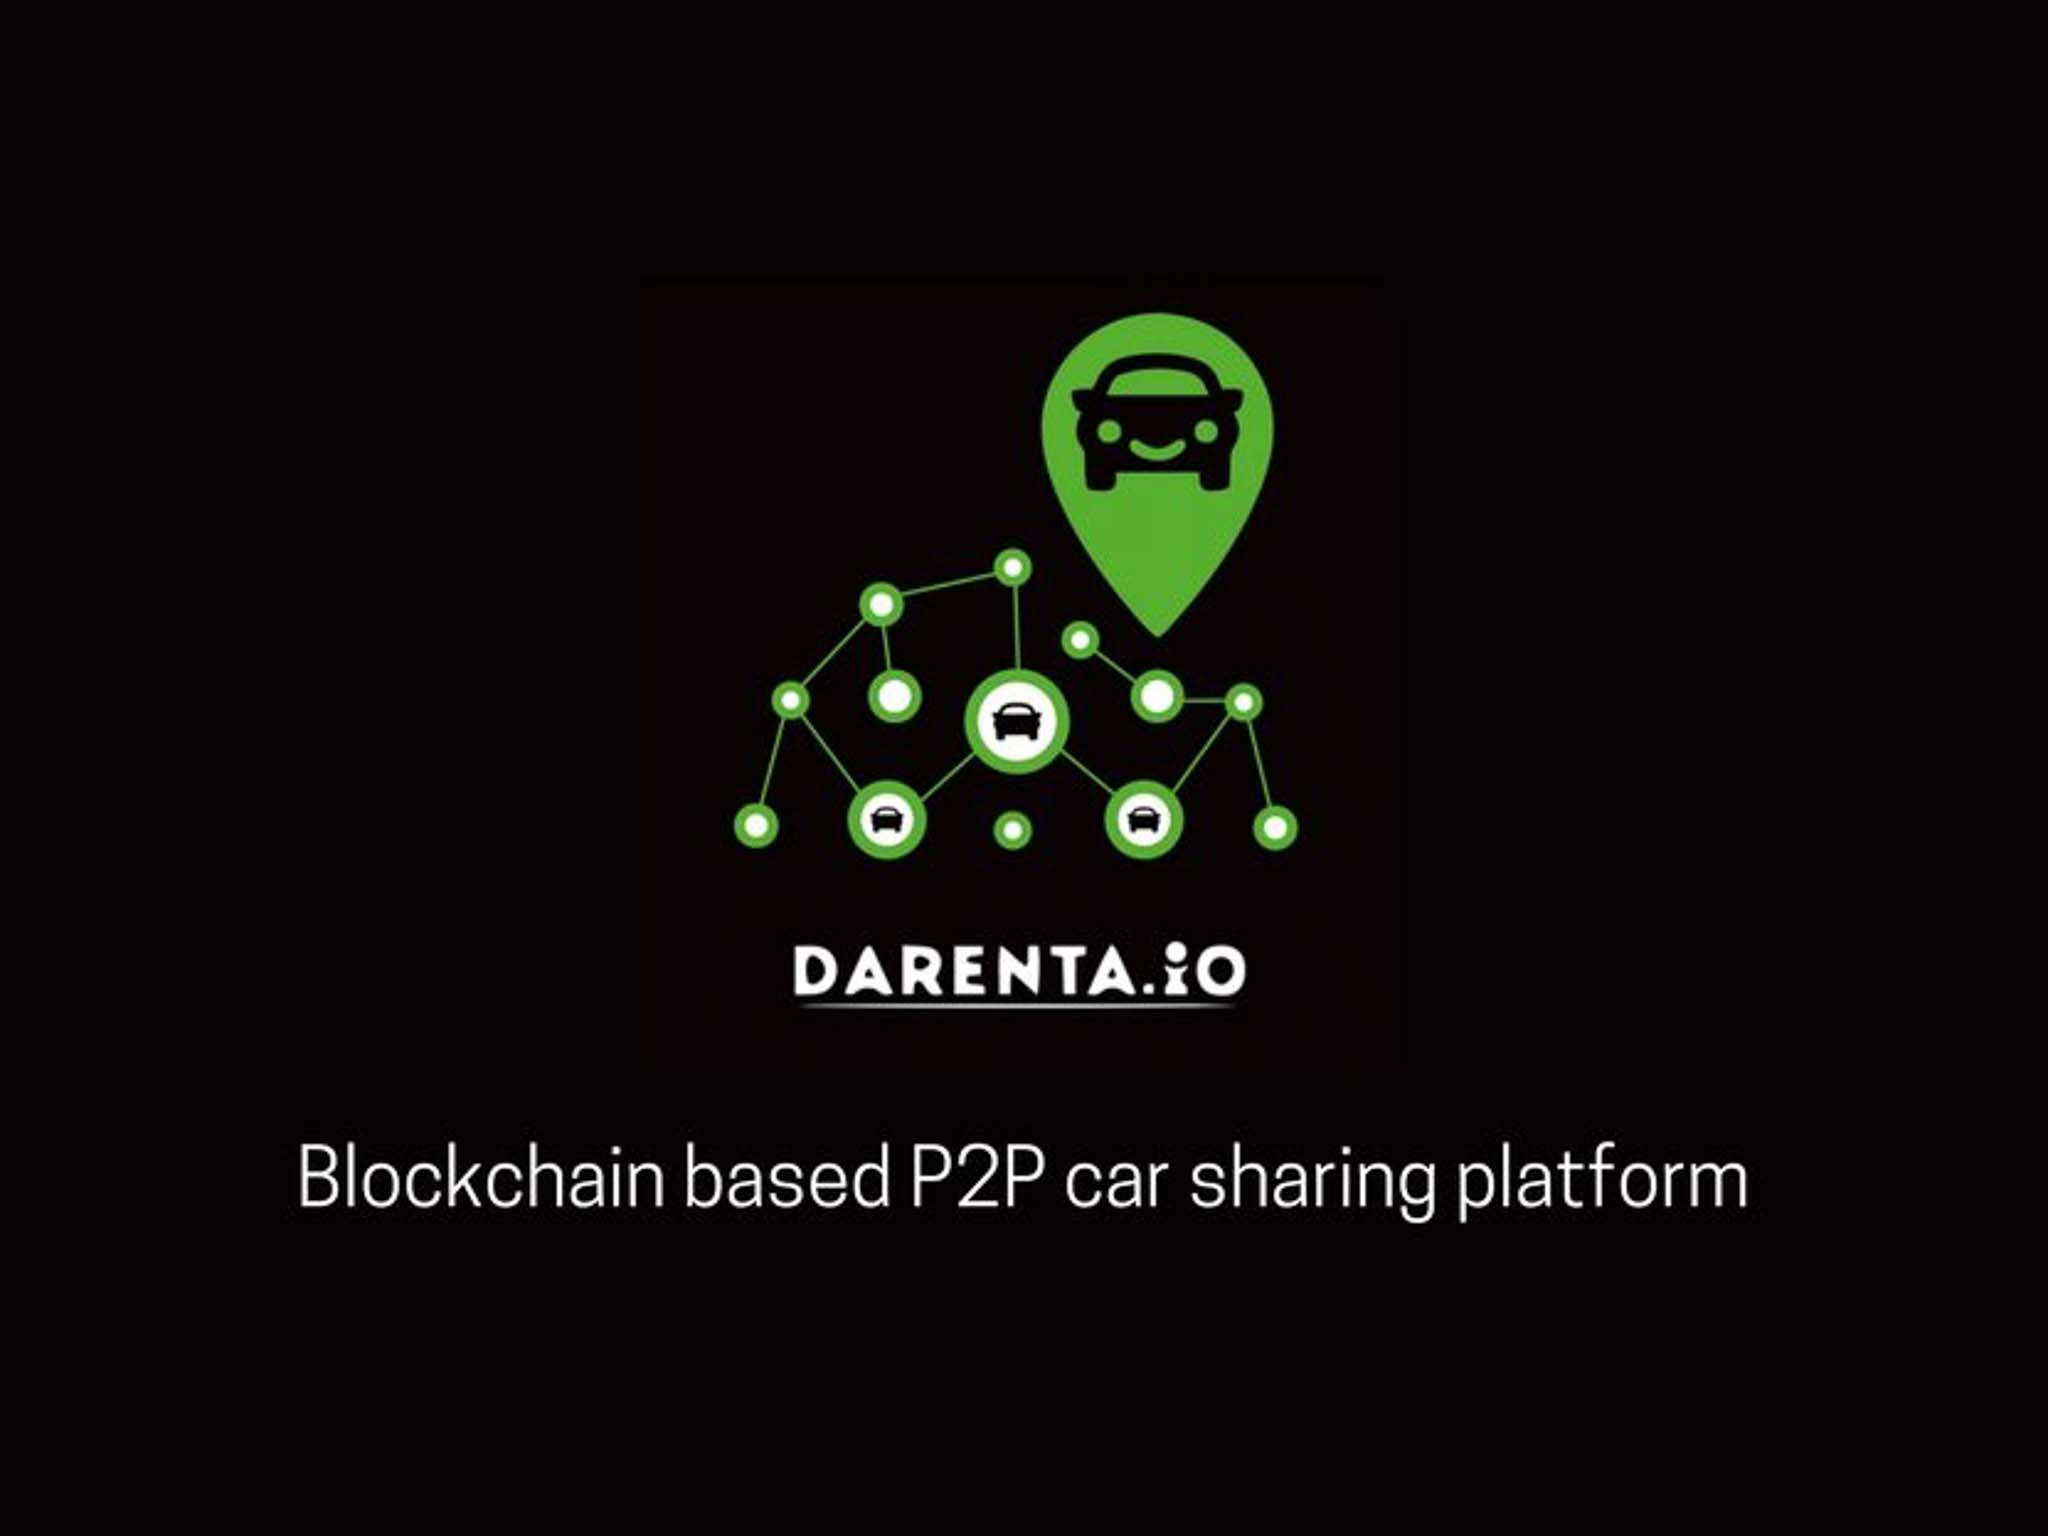 Rent a car for a crypto? Now it's easy!